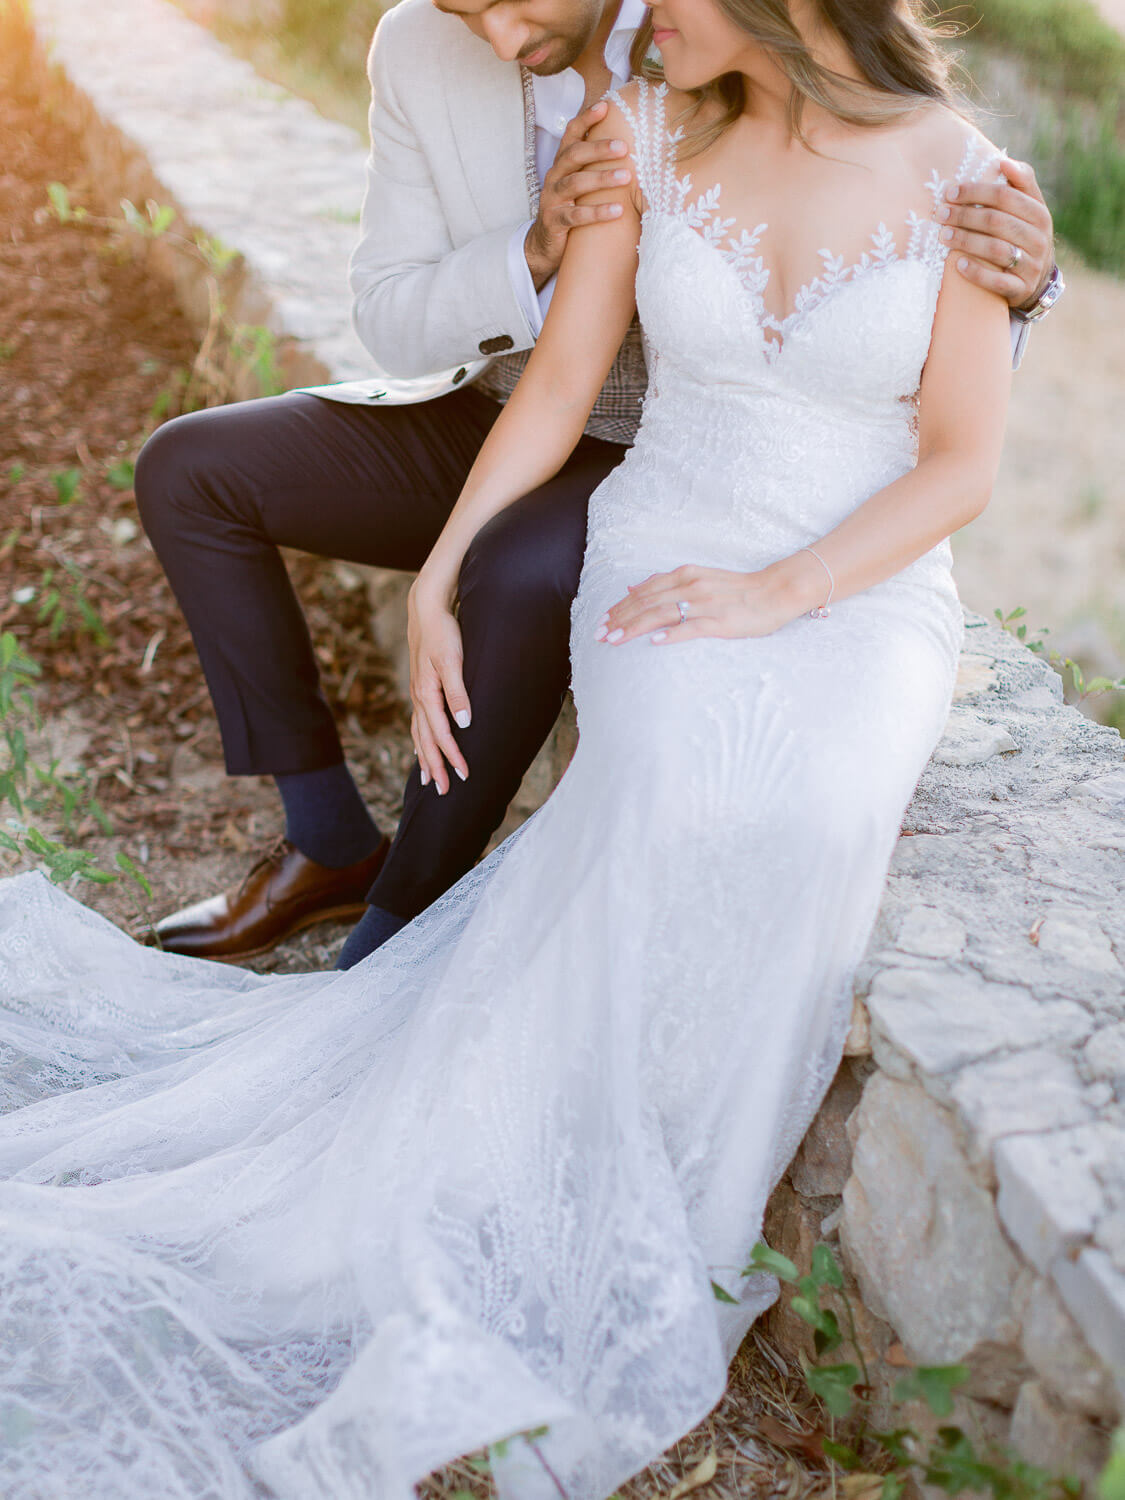 bride and groom's romantic portrait at a destination wedding in the Algarve by Portugal Wedding Photographer